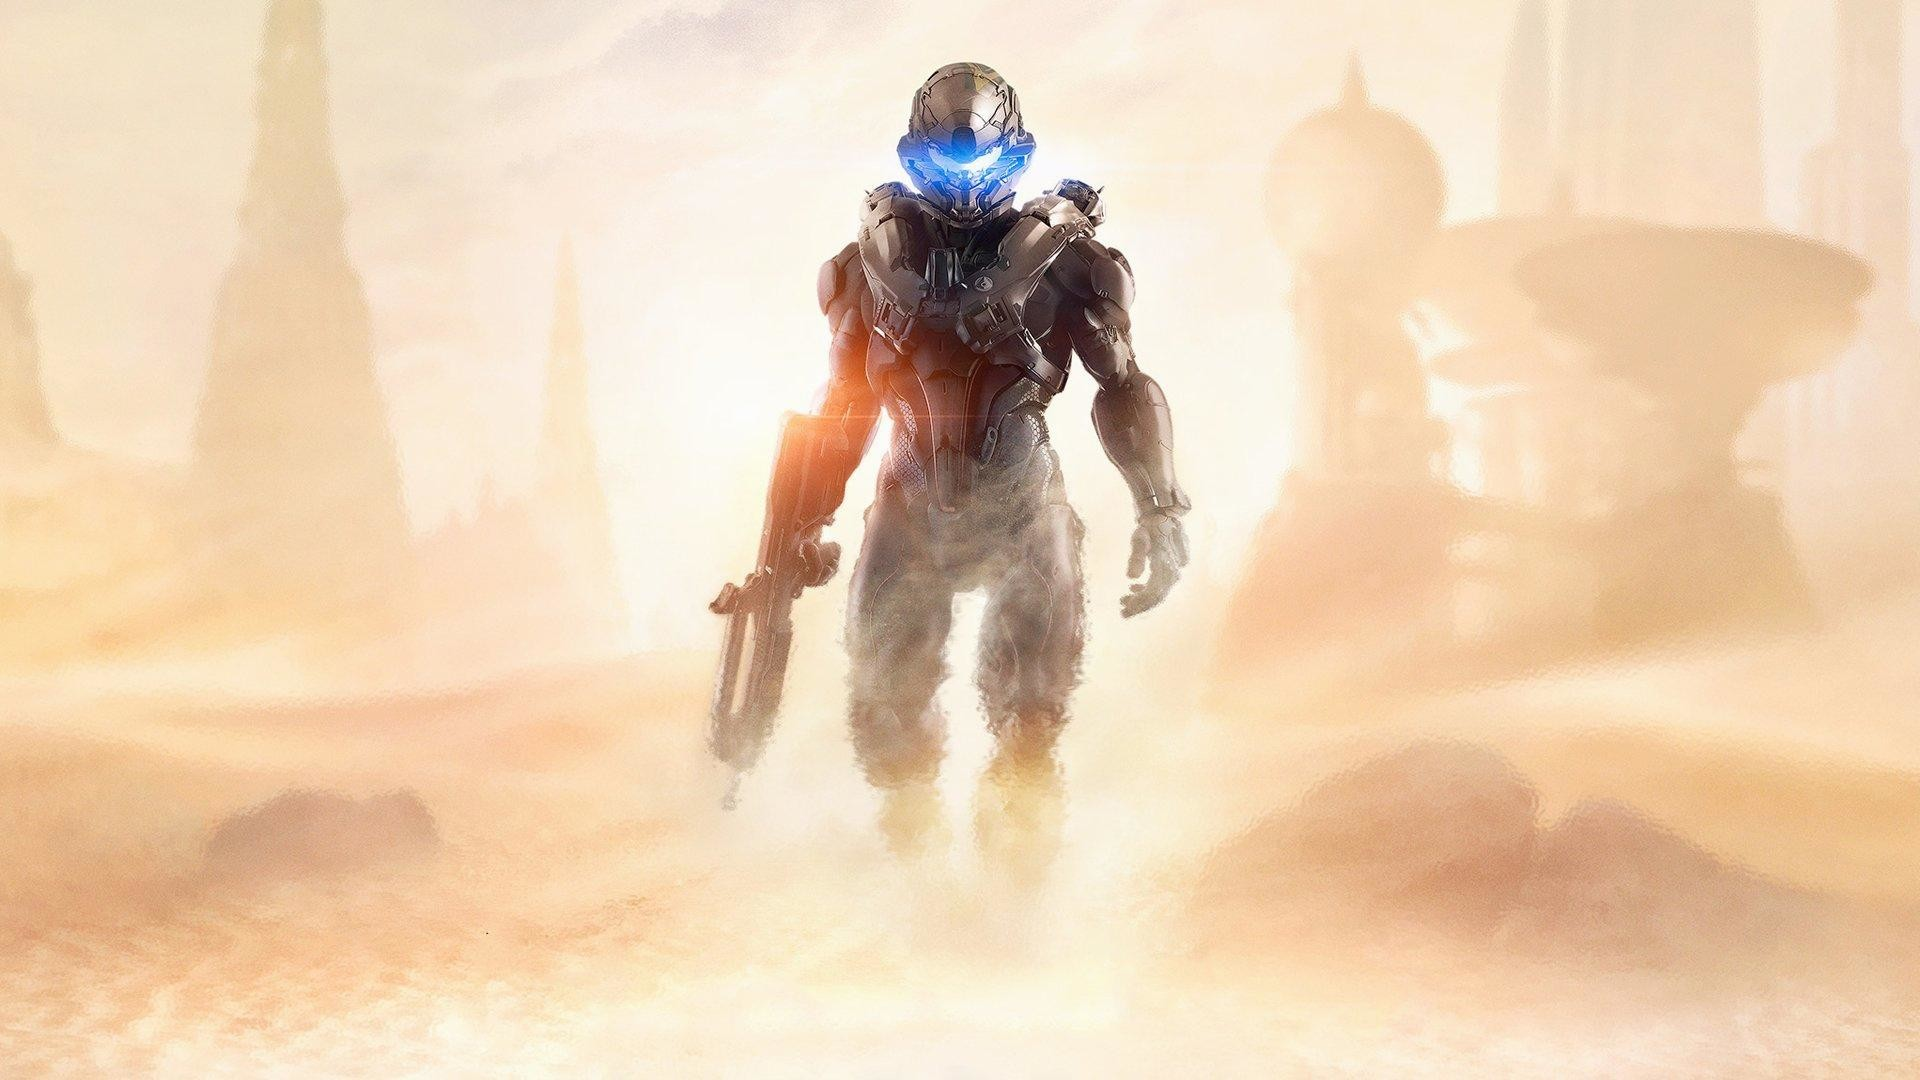 Video-Game-Halo-Guardians-wallpaper-wp20010060